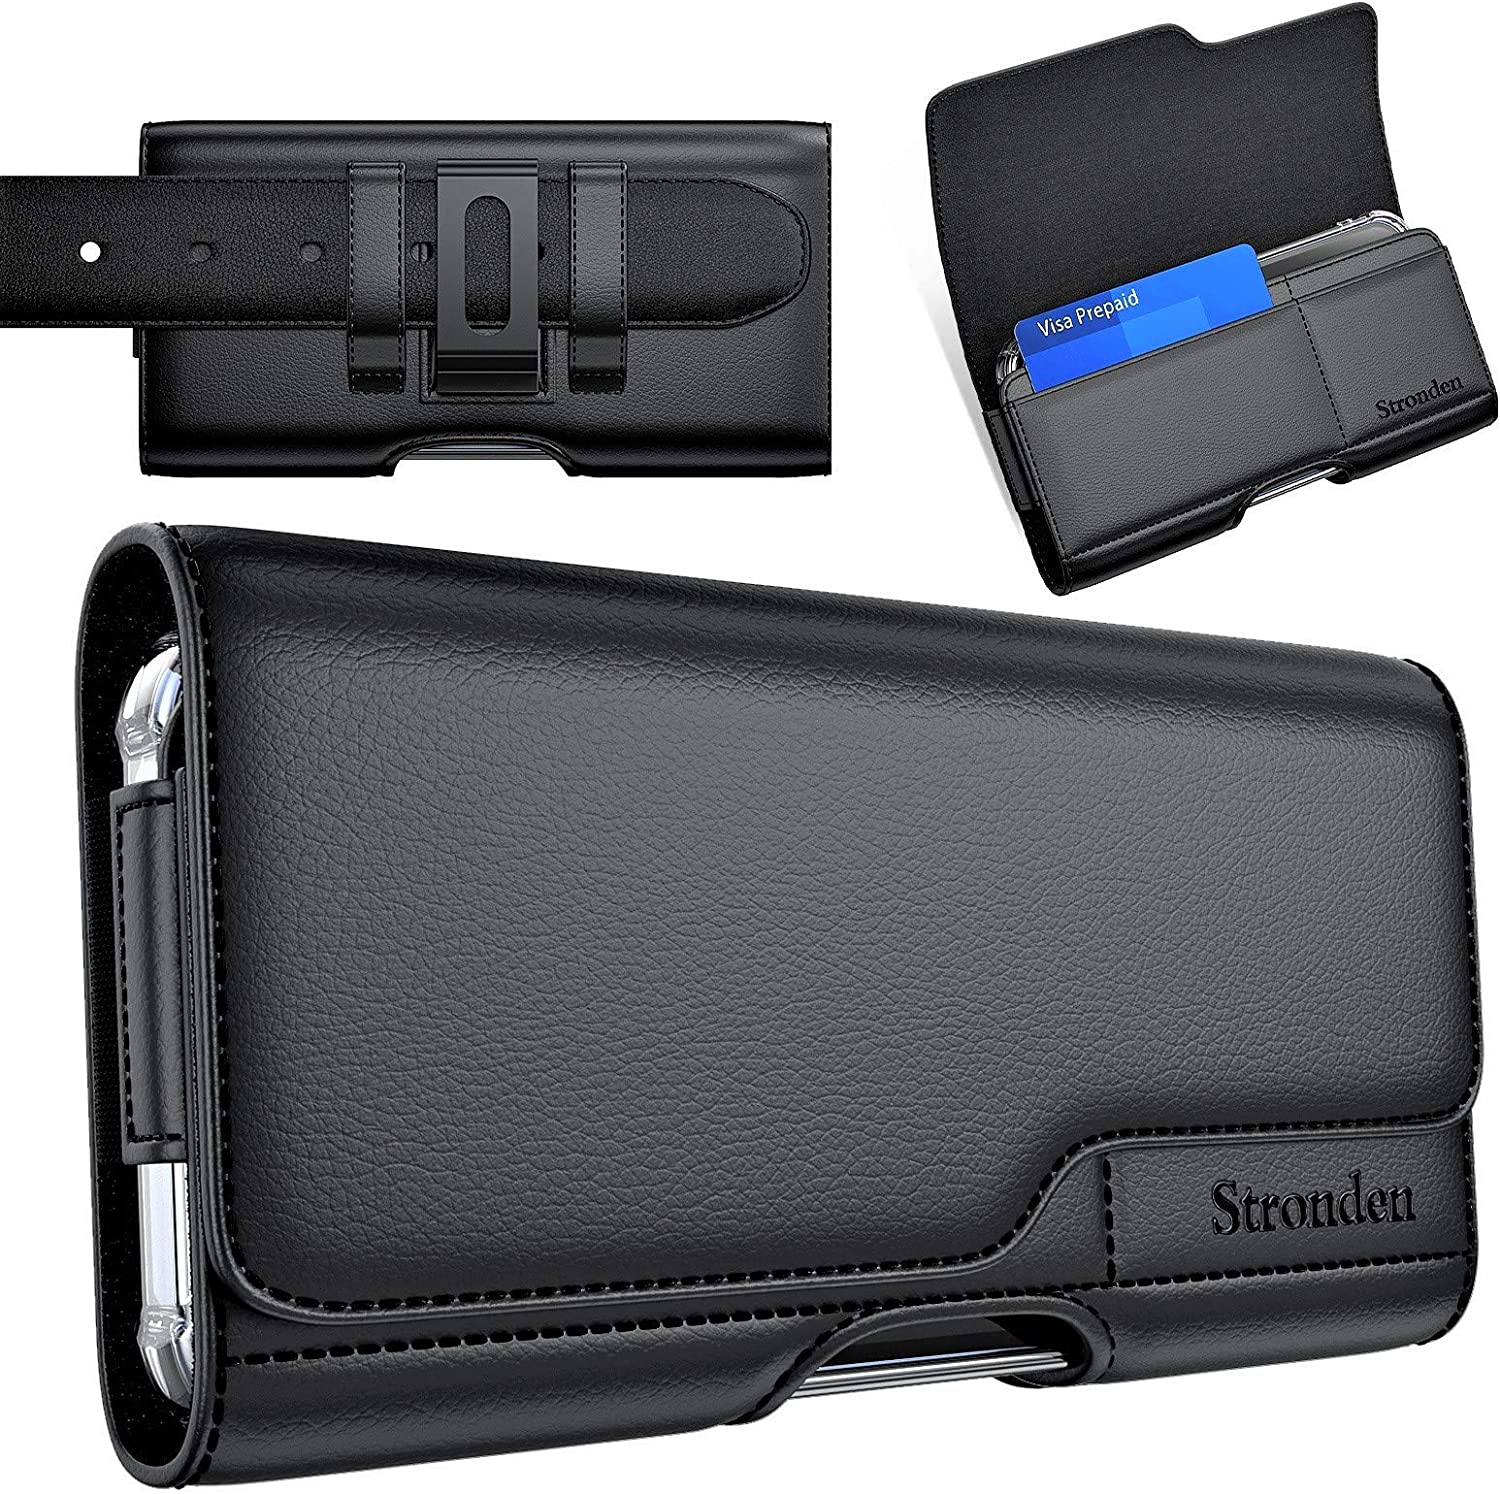 Stronden Holster for iPhone 13 Pro Max, 12 Pro Max, 11 Pro Max, XS Max, 8 Plus - Leather Belt Case with Belt Clip [Magnetic Closure] Pouch w/Built in Card Holder (Fits Slim/Thin Case Only)